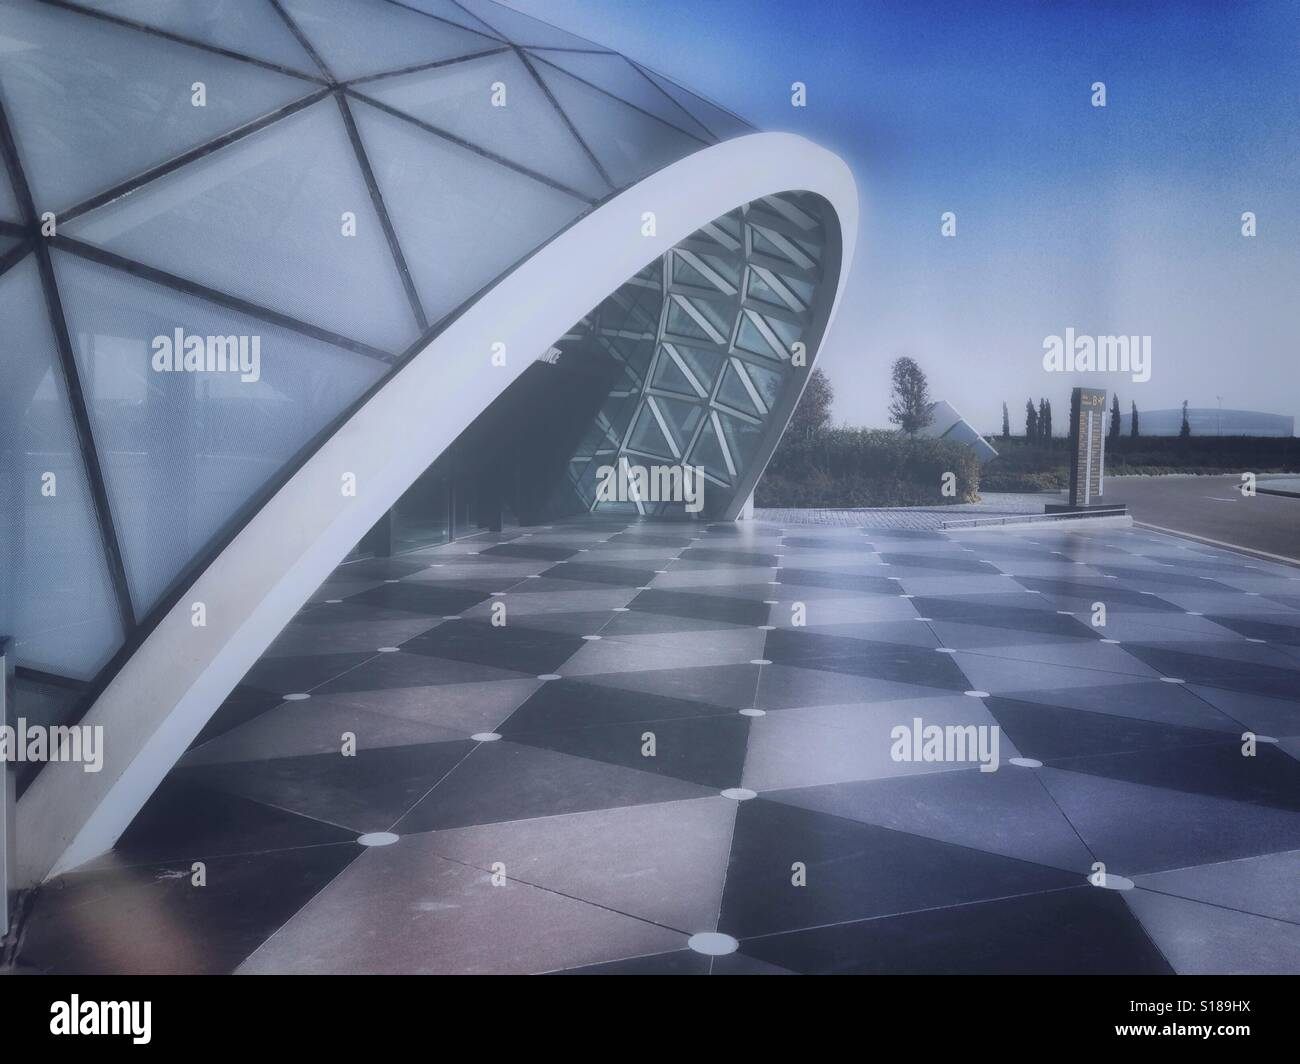 Modern architecture of Heydar Aliyev airport in Baku, Azerbajan - Stock Image